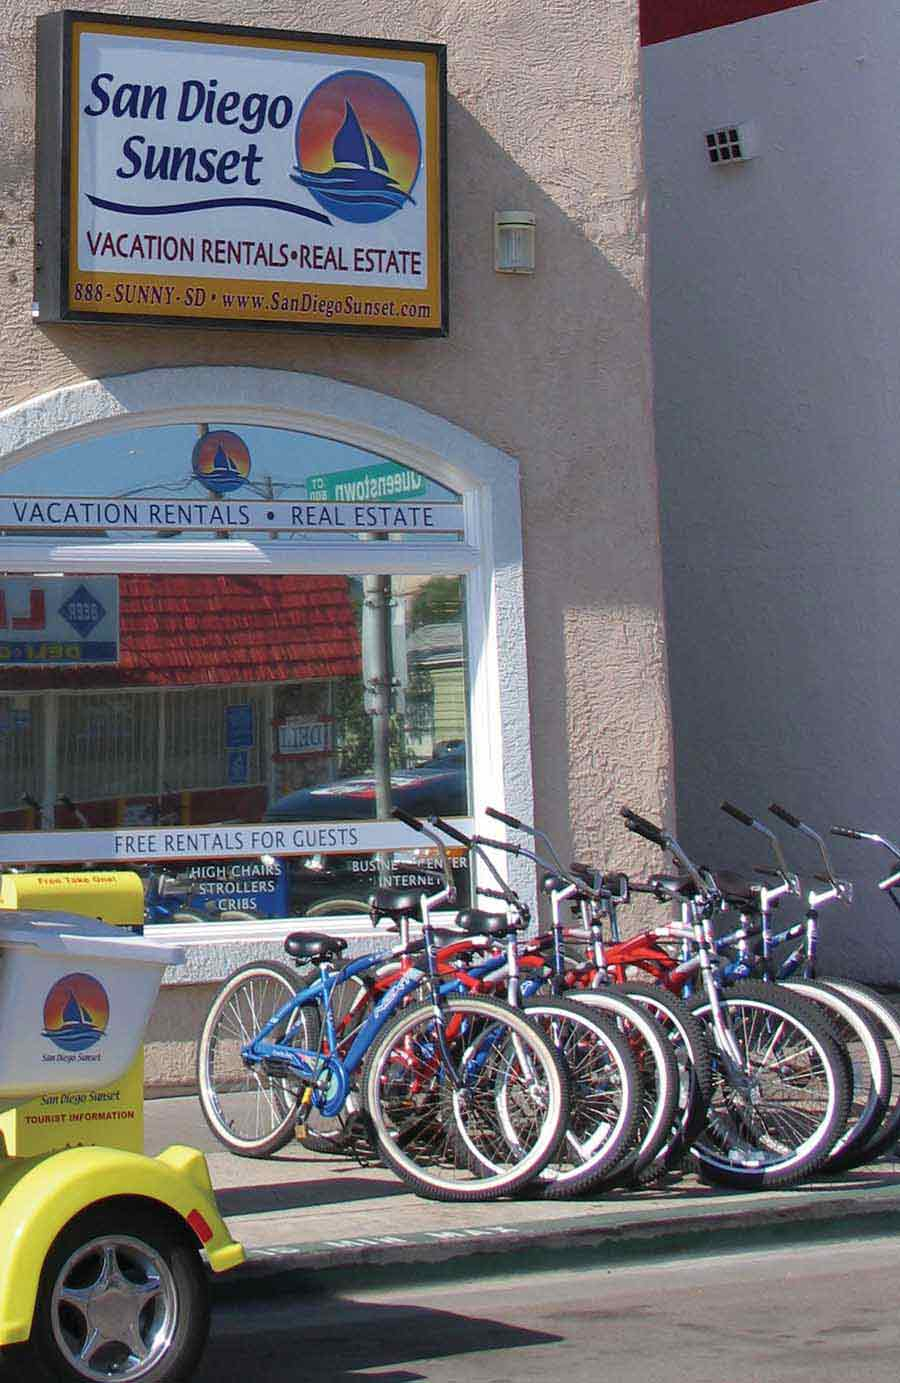 A row of bicycles await free usage by San Diego Sunset Vacation Rental guests.